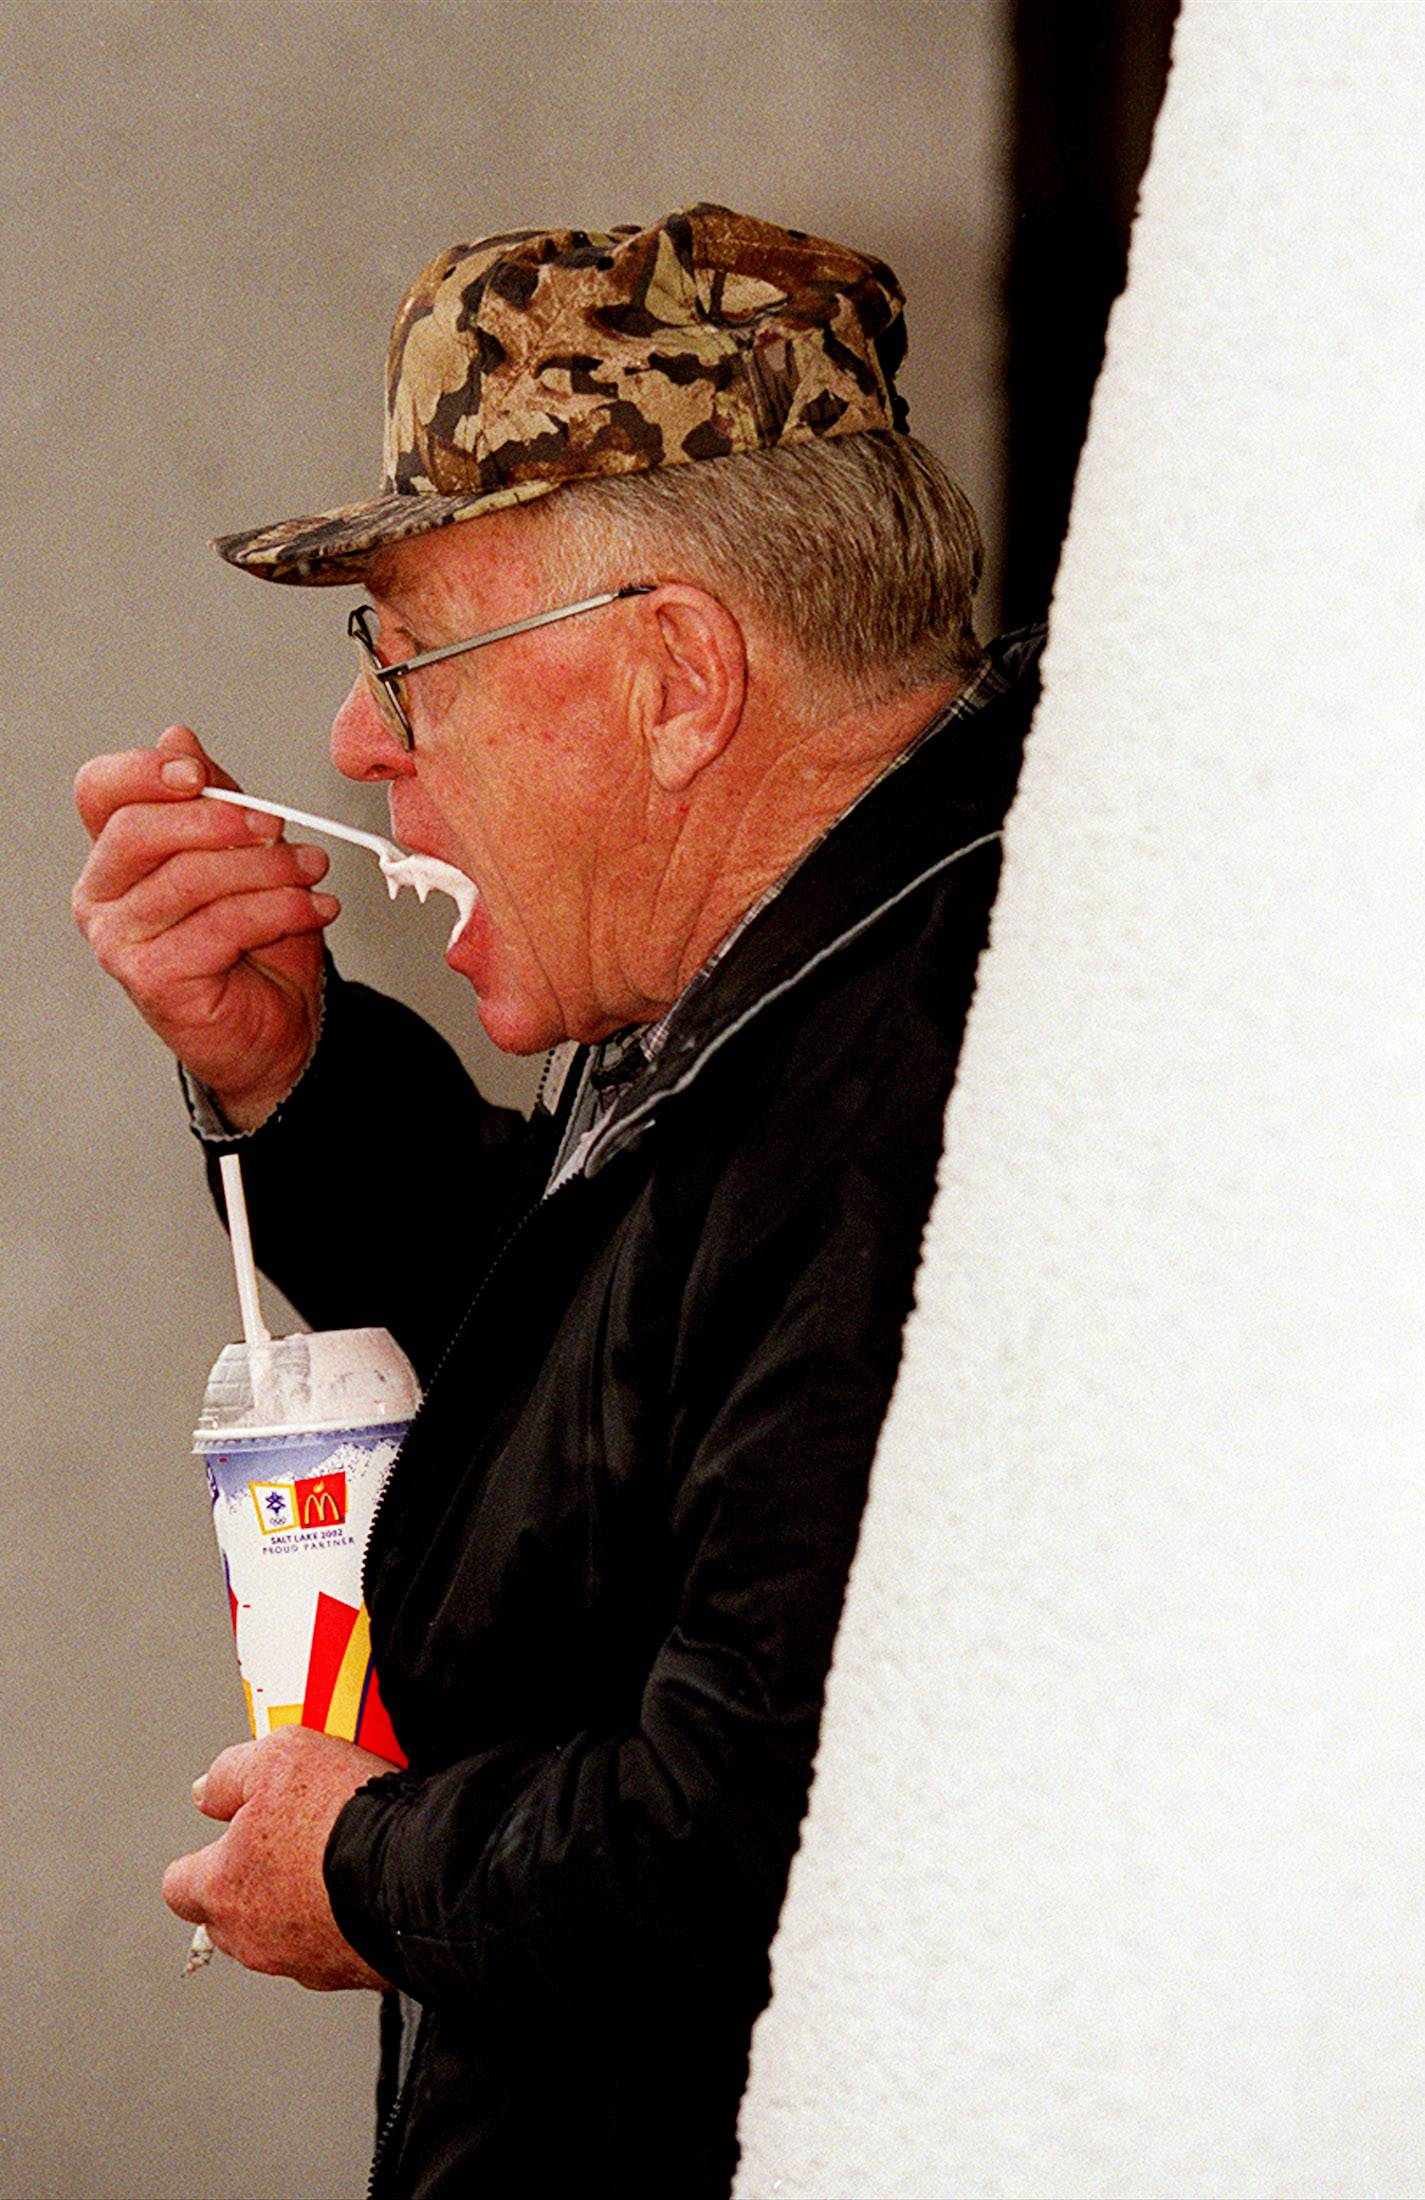 Rich Yunk of Park Falls, Wis. enjoys a smoke and a bite of ice cream at the Des Plaines Oasis.